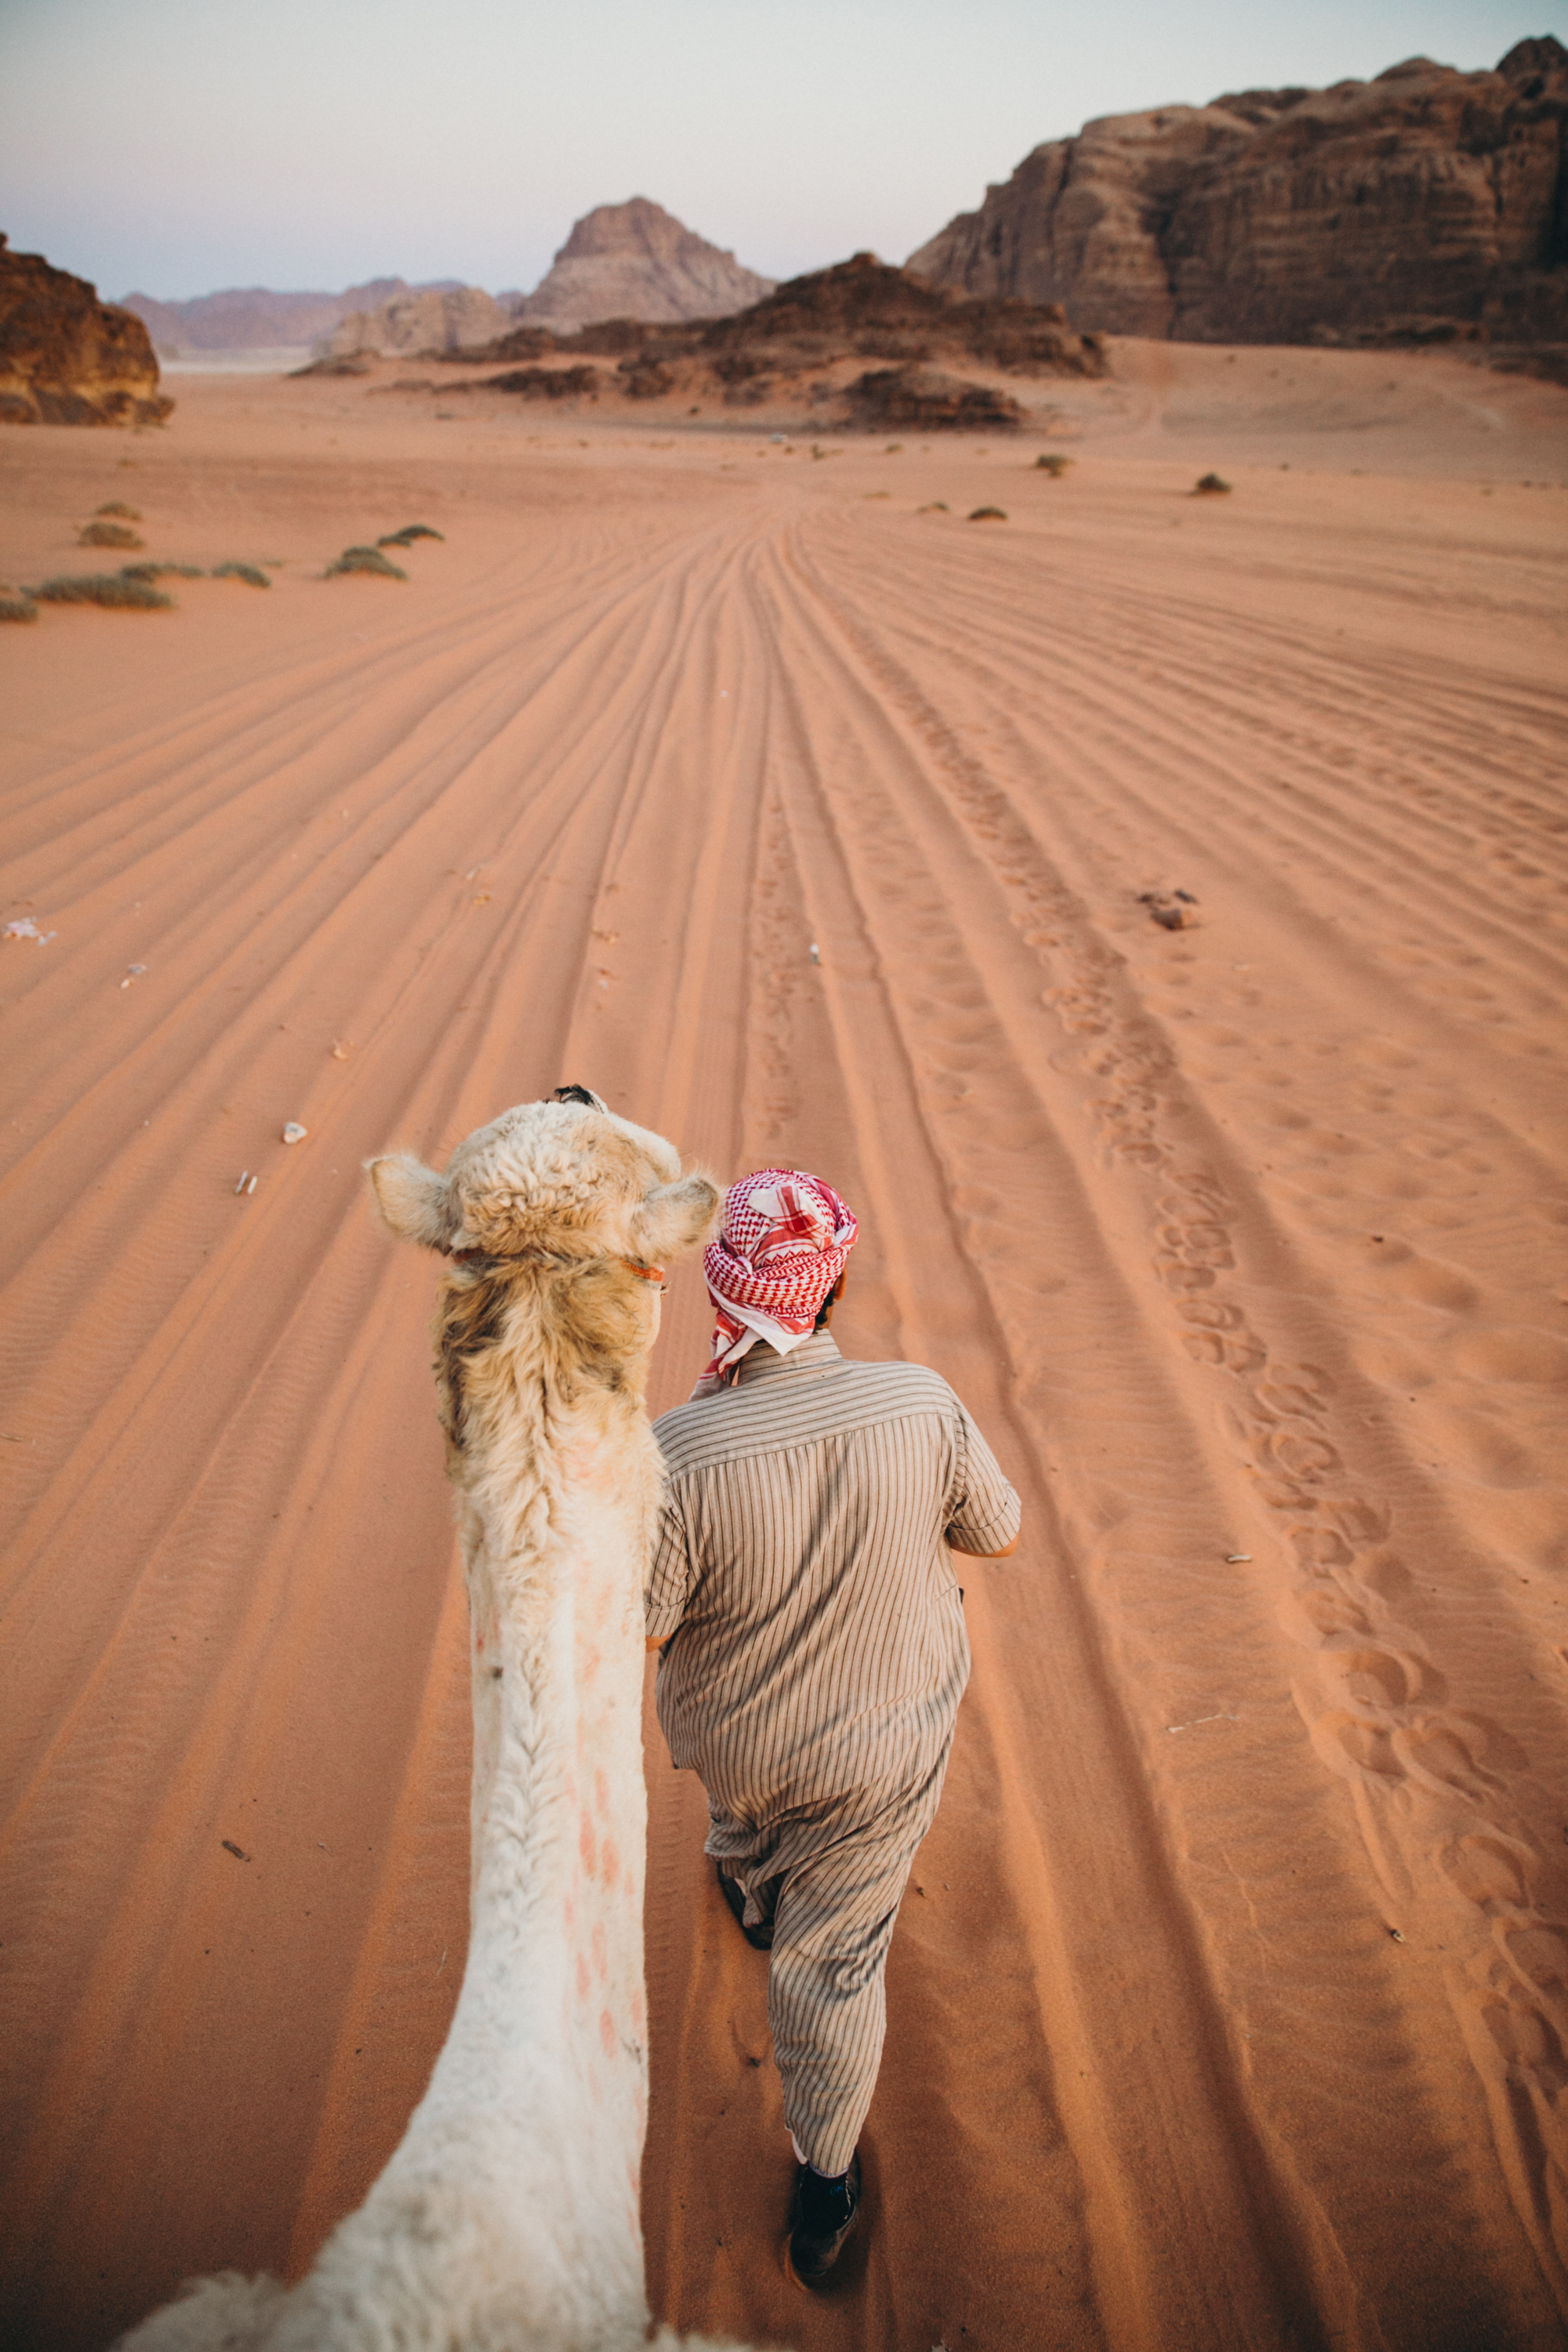 Riding camels in Wadi Rum was by far one of my favorite activities. We met so many characters and I was able to take some of my favorite photos ever! I absolutely love this image, I plan on printing it big someday when I have a house!